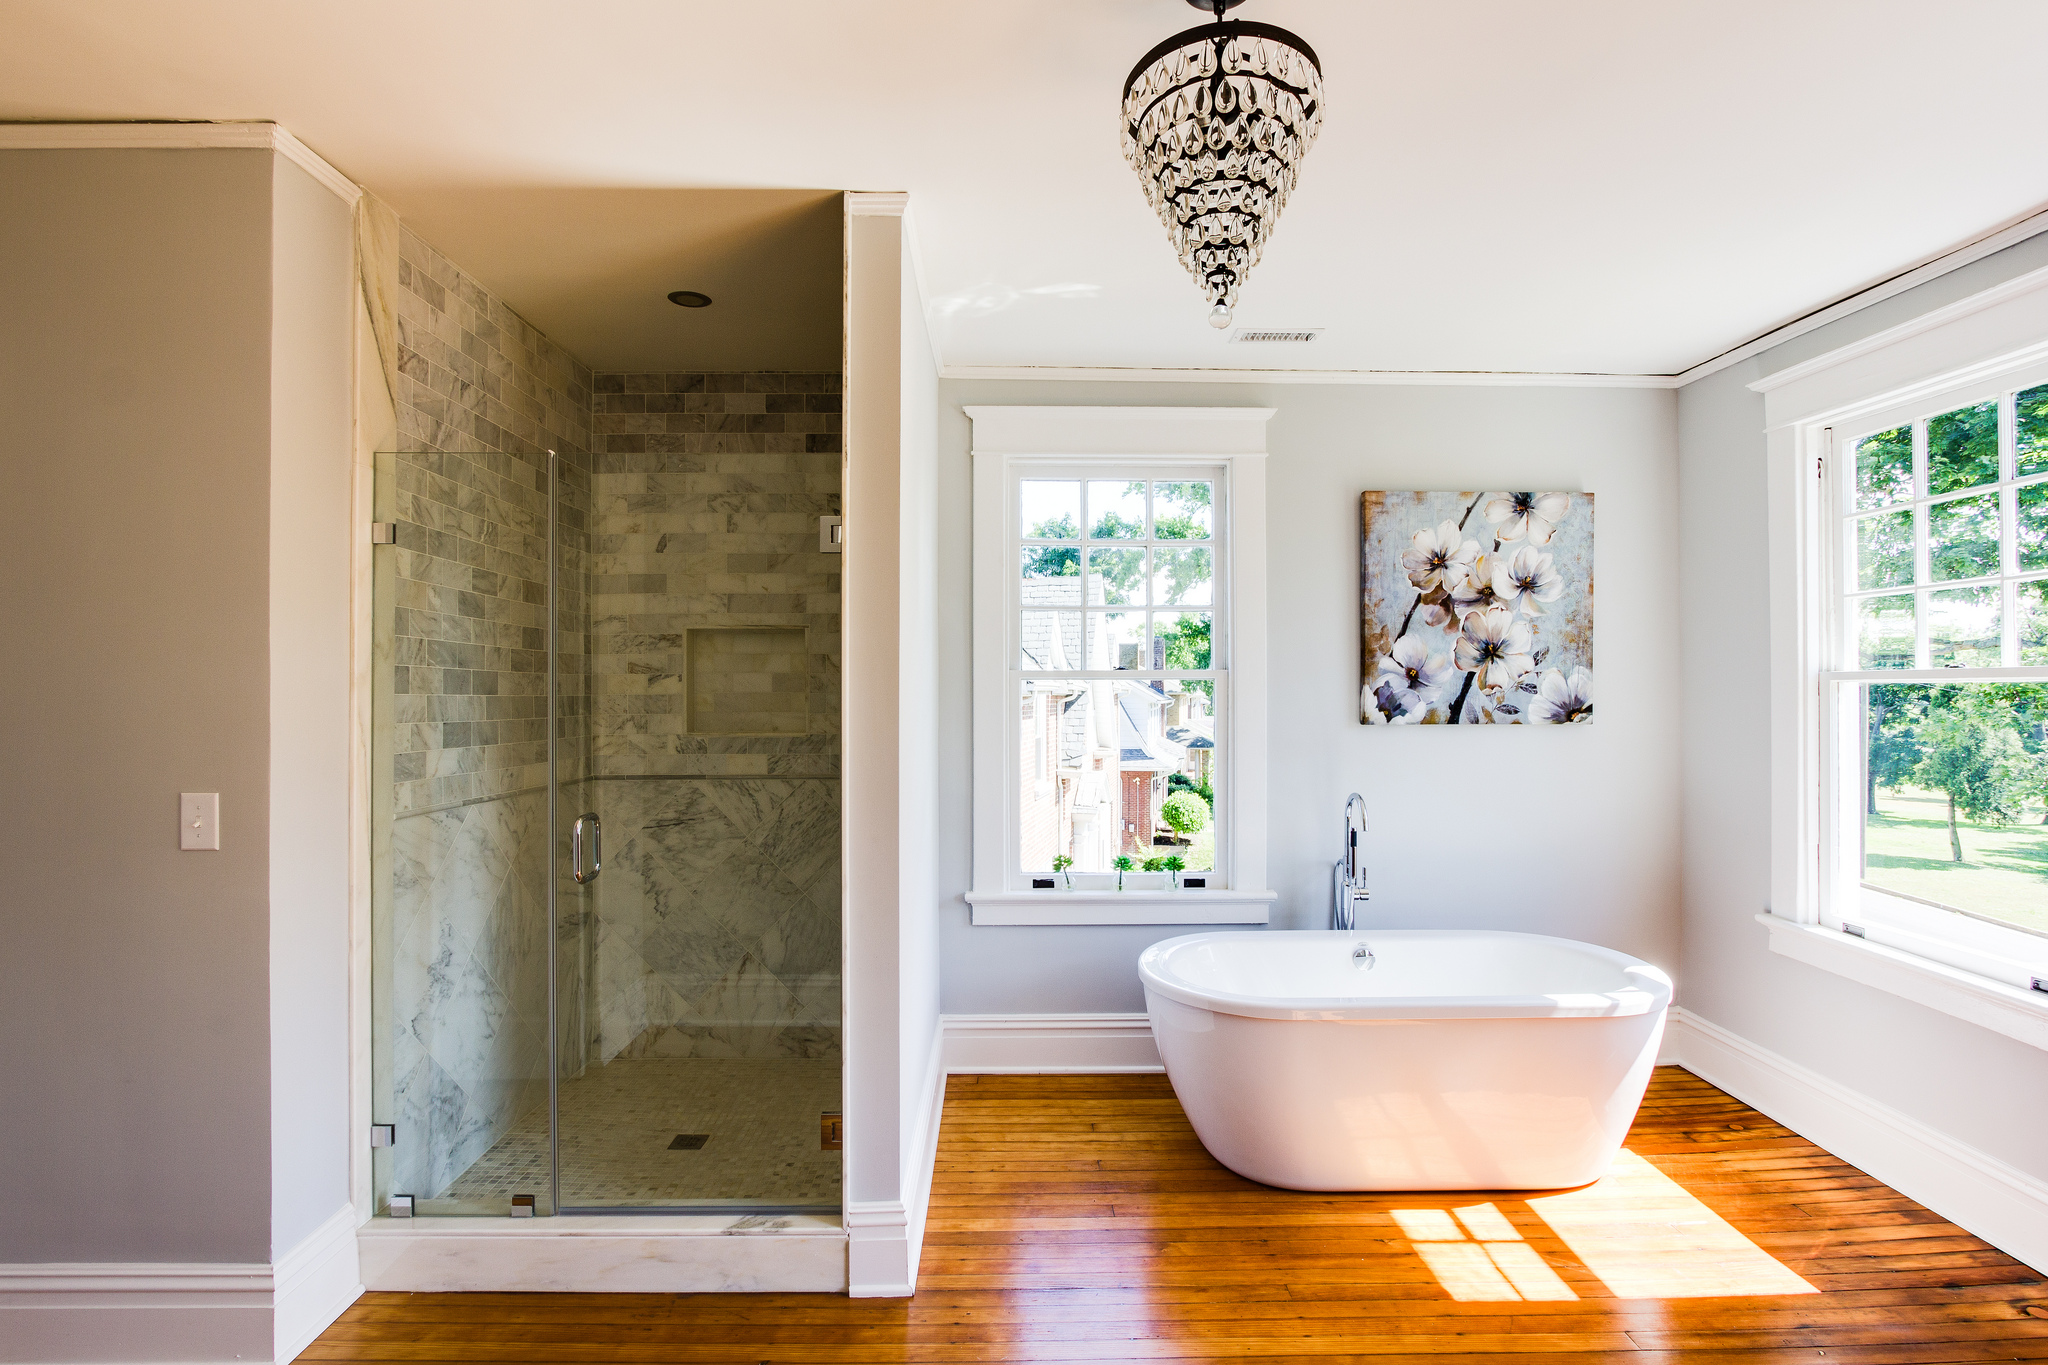 Remodelaholic   Spacious Bathroom Inspiration  Hawthorne  spacious open bathroom with wood floor  walk in marble shower   and. Bathrooms Near. Home Design Ideas